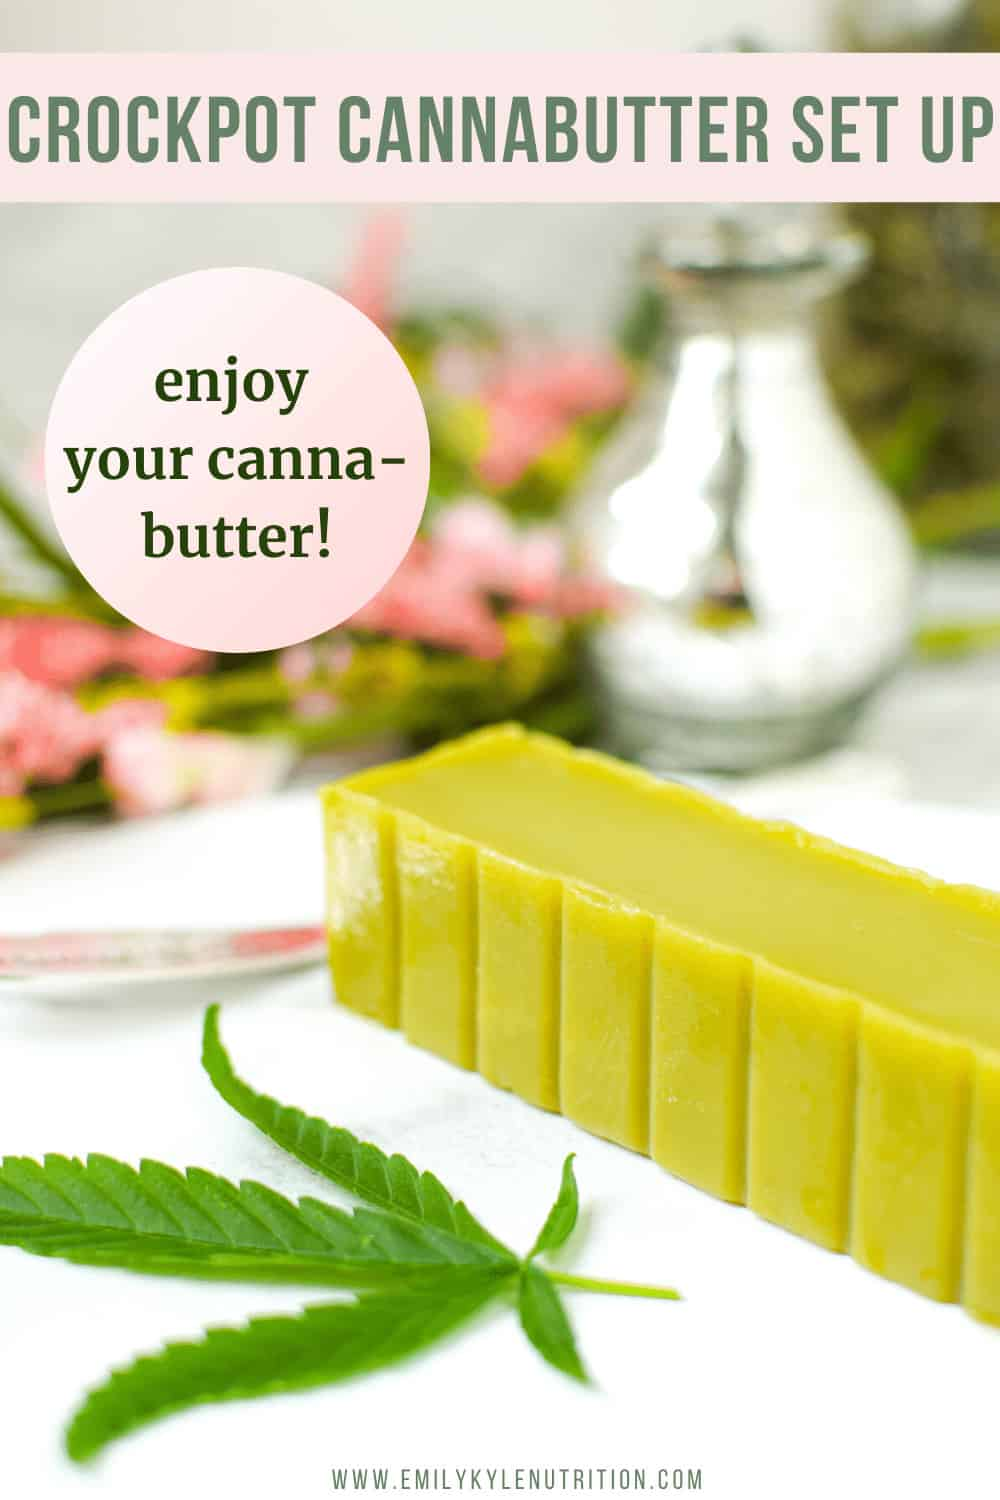 Enjoy Your Crockpot Cannabutter